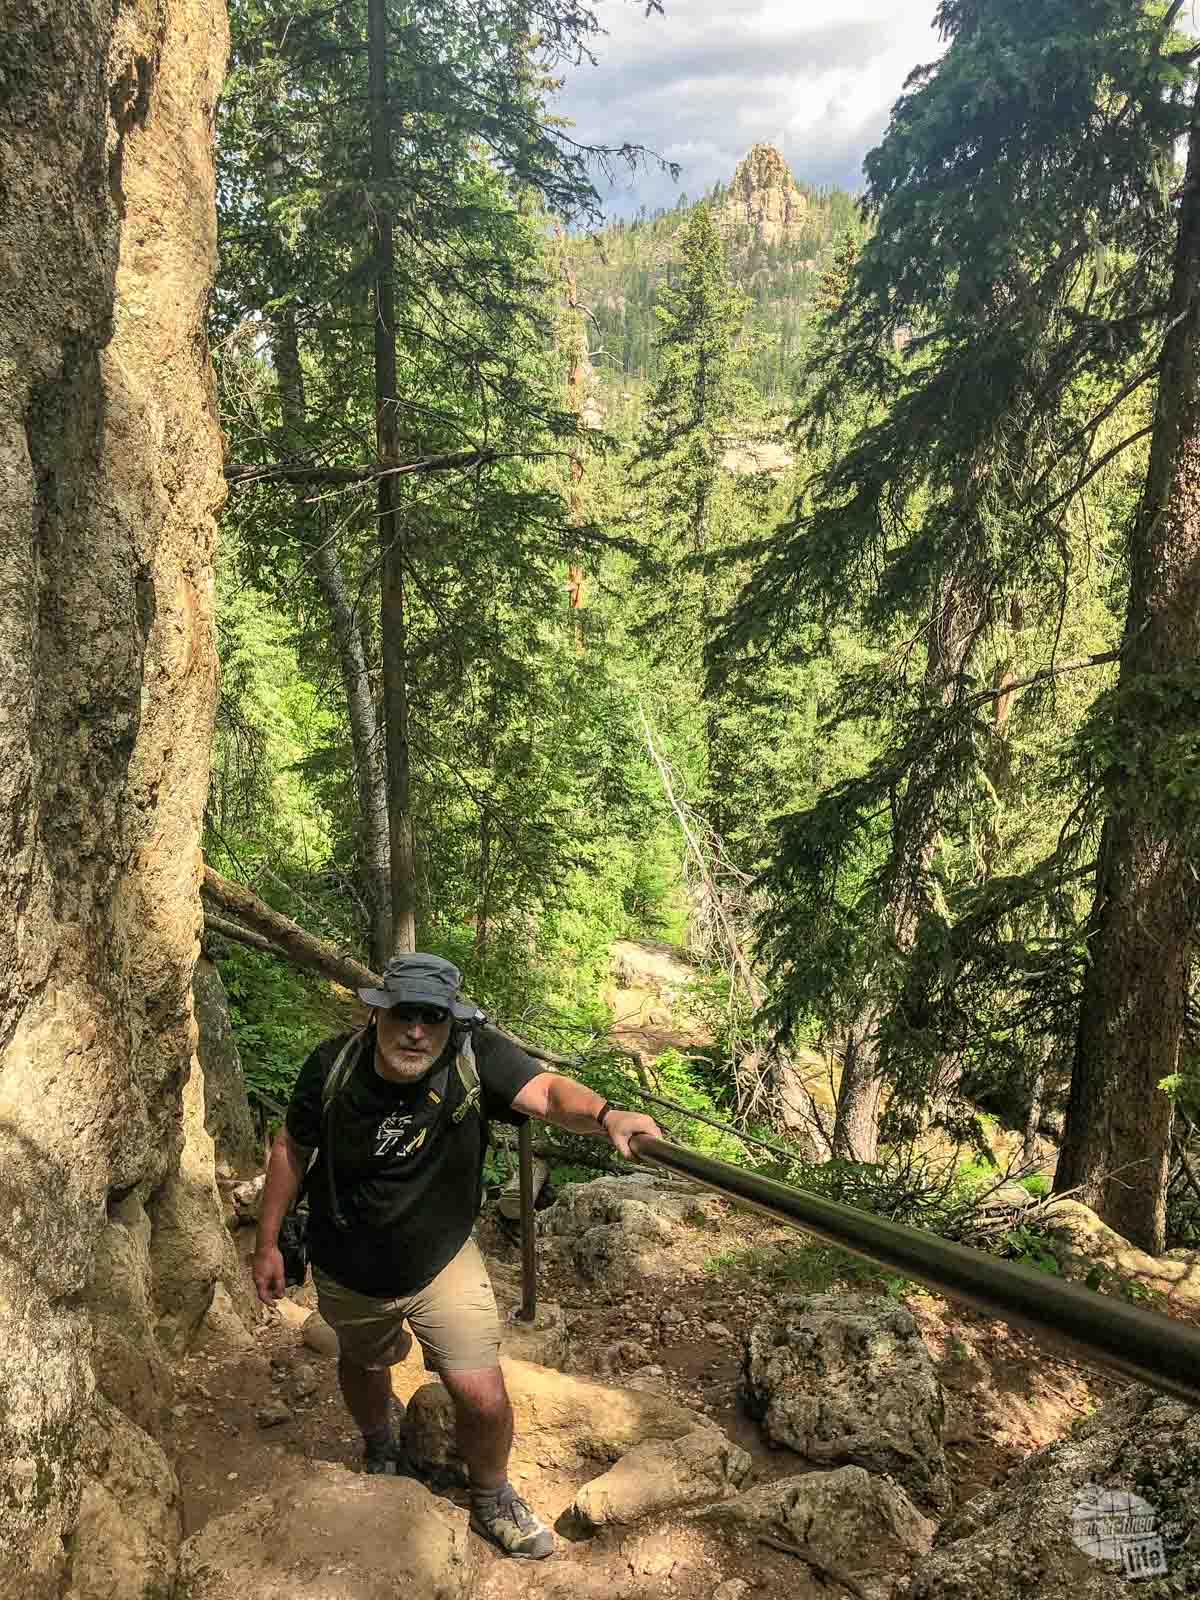 The Sunday Gulch Trail was a fun hike at Custer State Park.